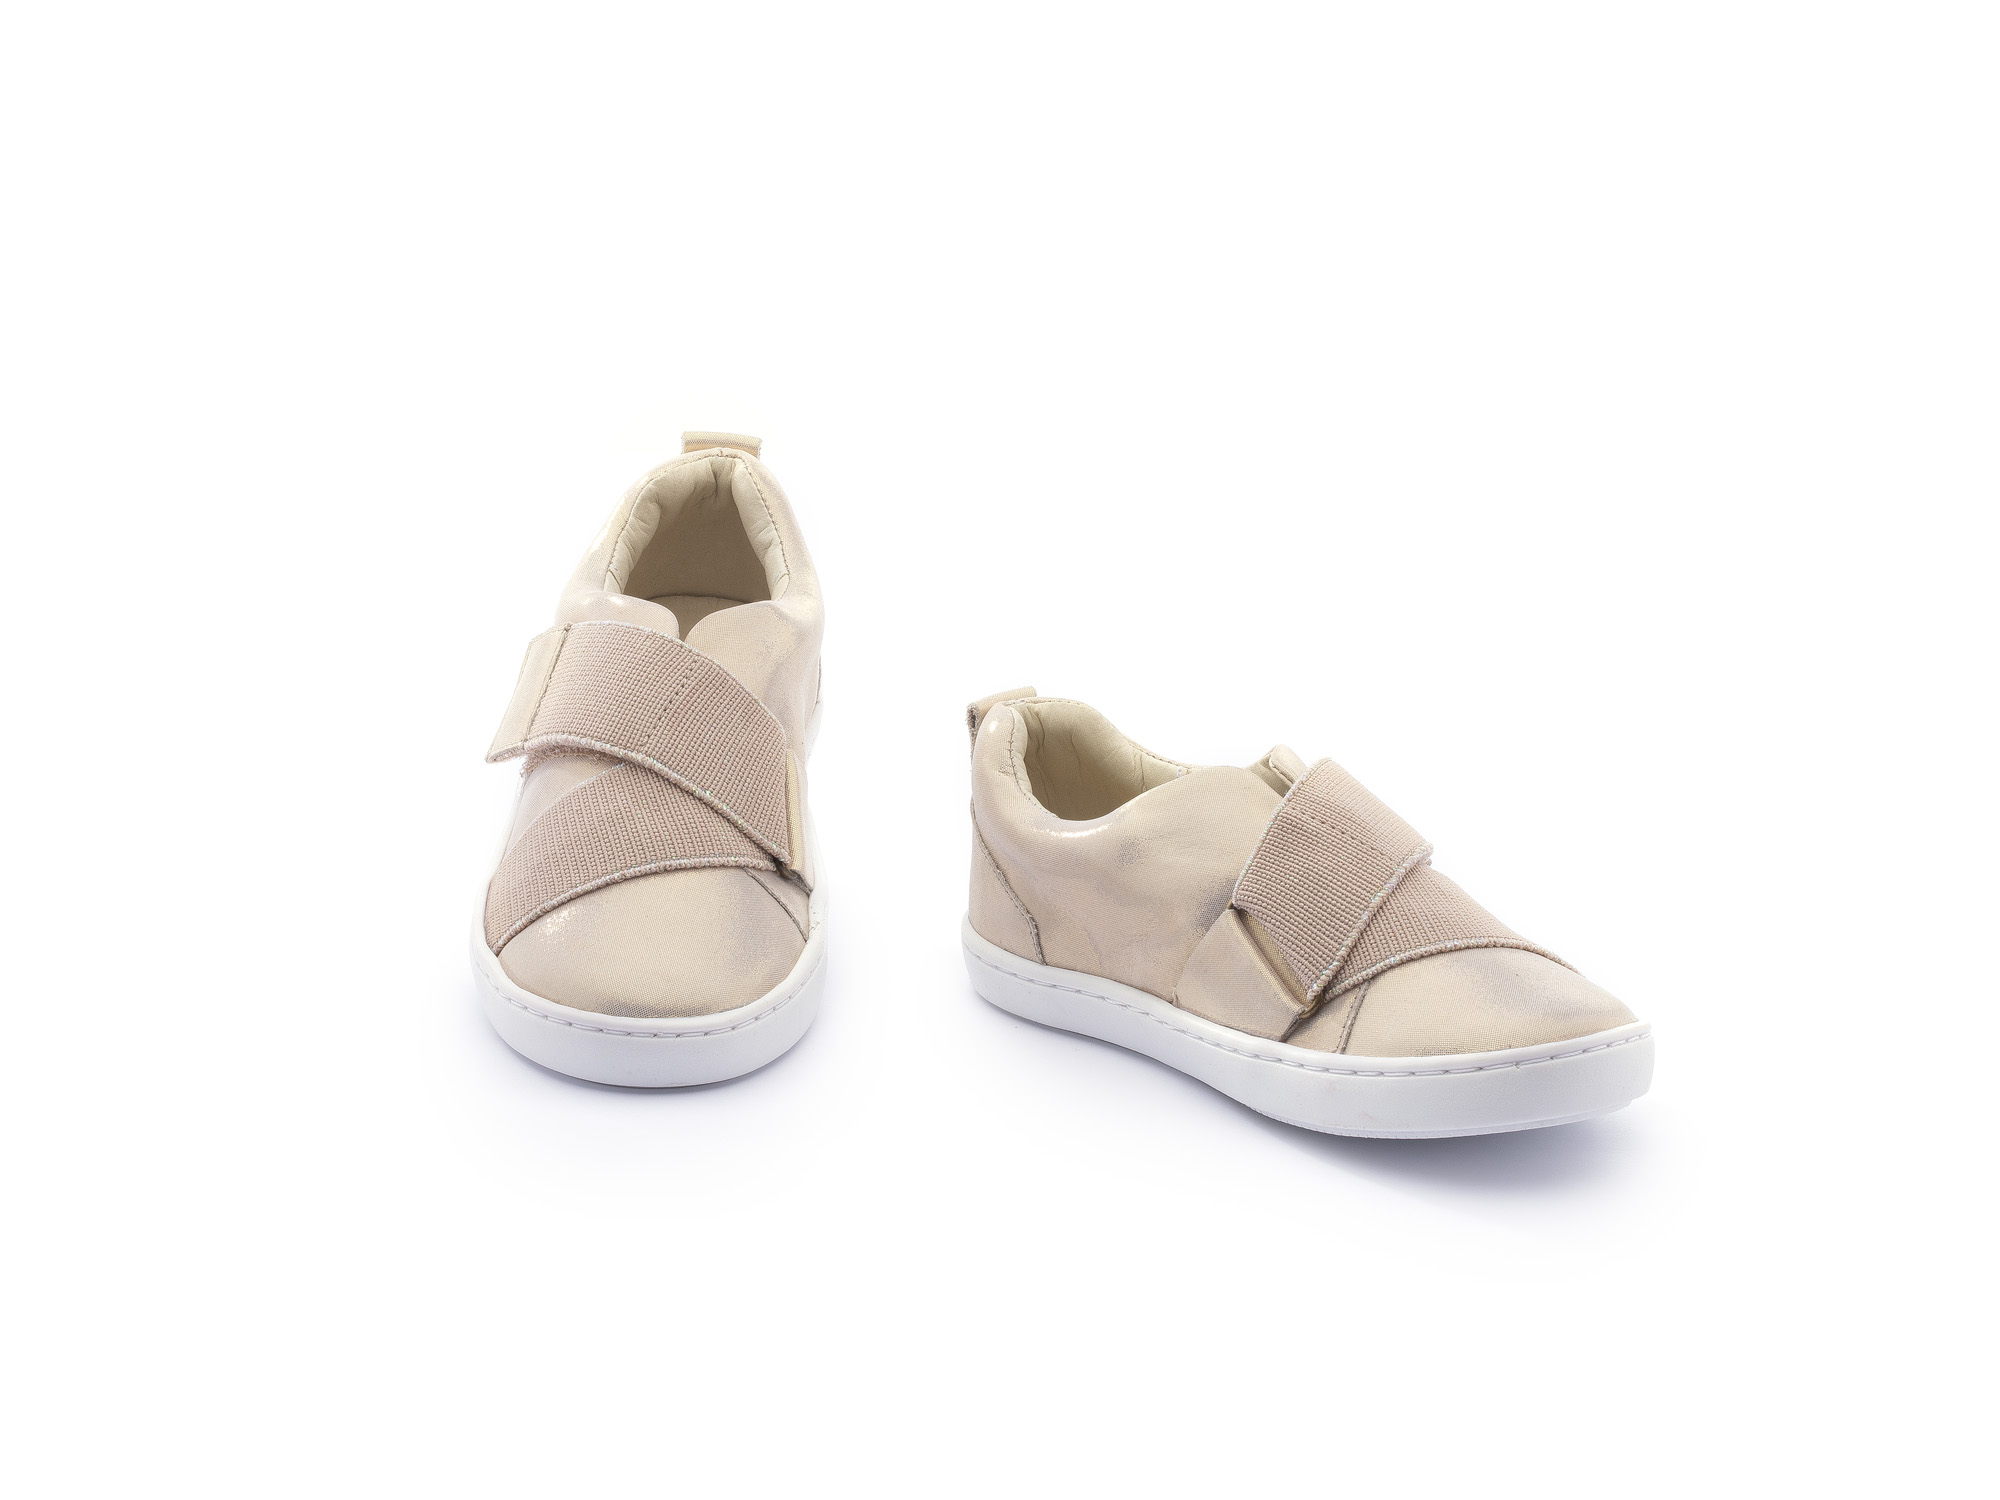 Sneaker Casual Little Zag Cotton Candy Foil Toddler 2 à 4 anos - 2